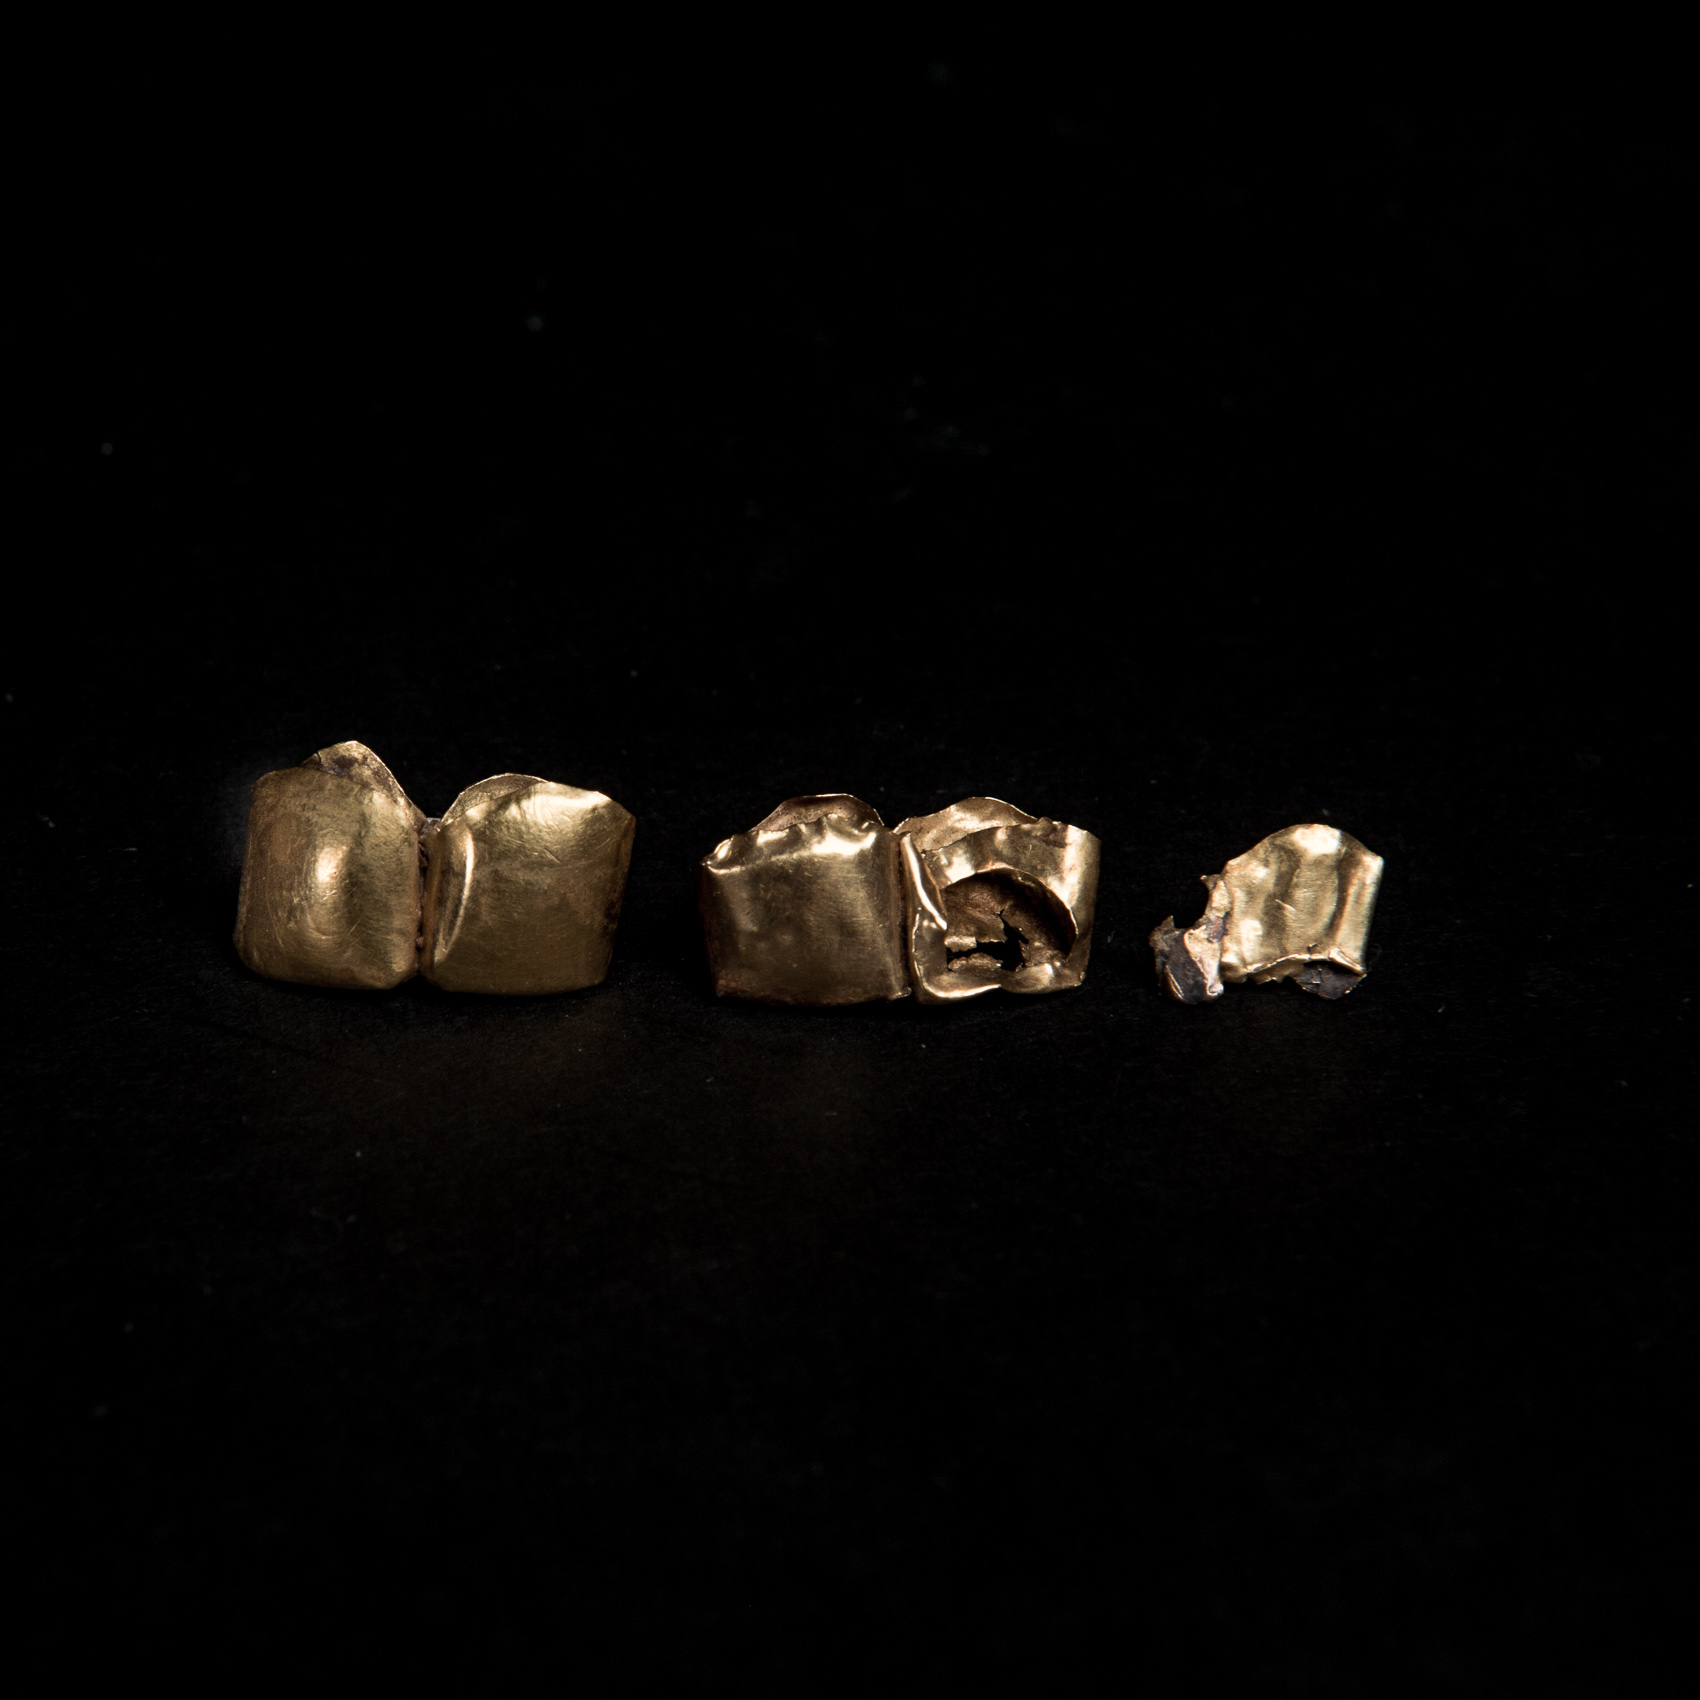 Lie Soei Pin's Gold Teeth